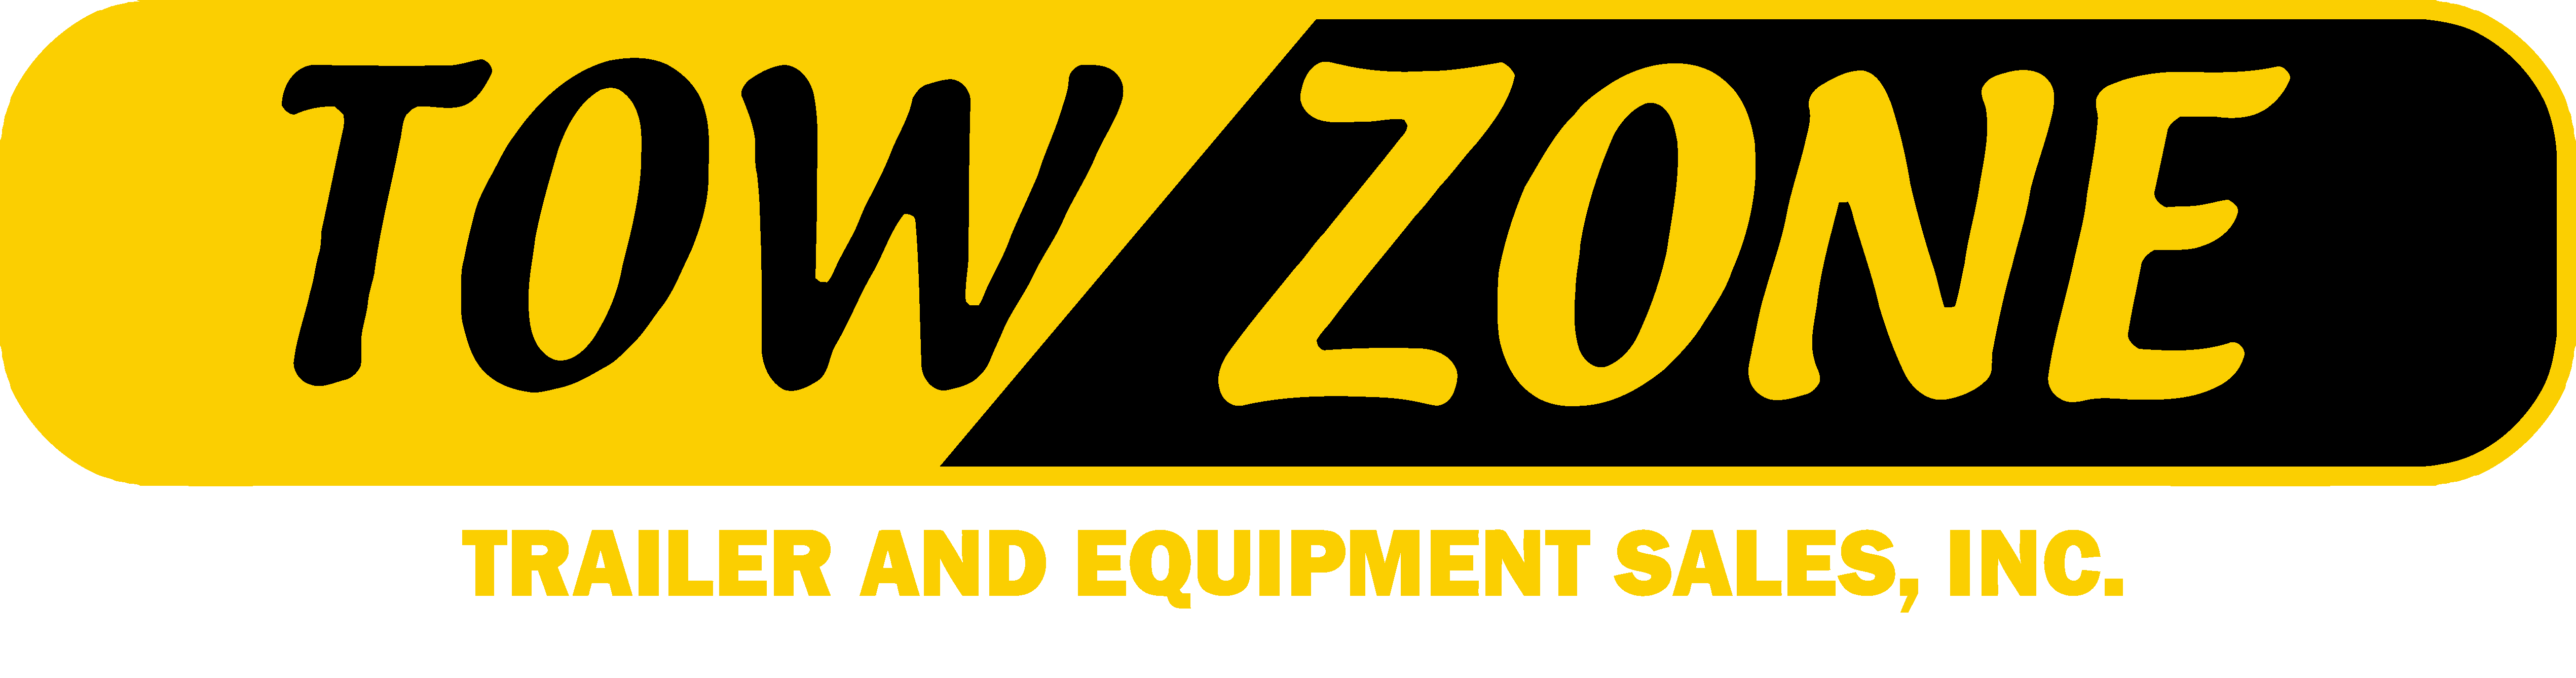 Tow Zone Trailers & Equipment Sales, INC.